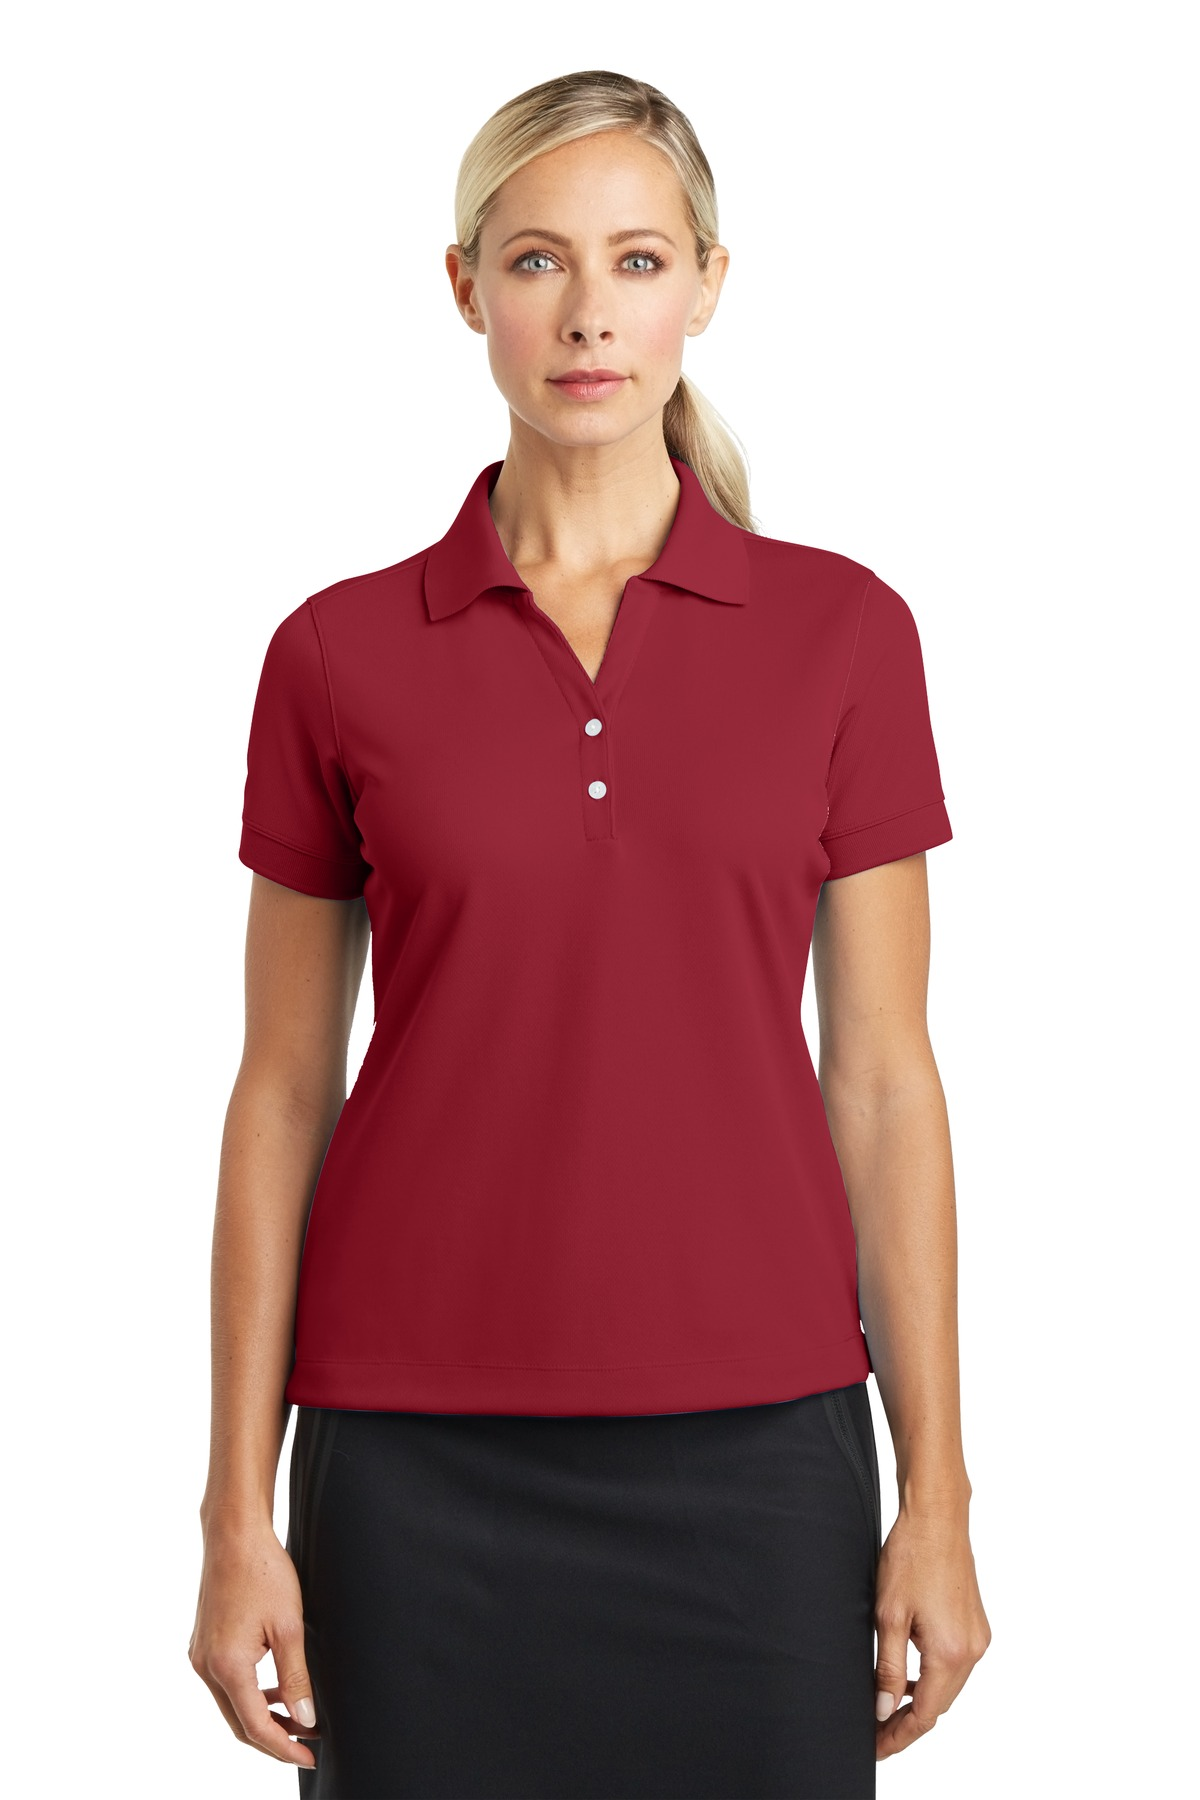 Nike Ladies Dri-FIT Classic Polo.  286772 - Varsity Red